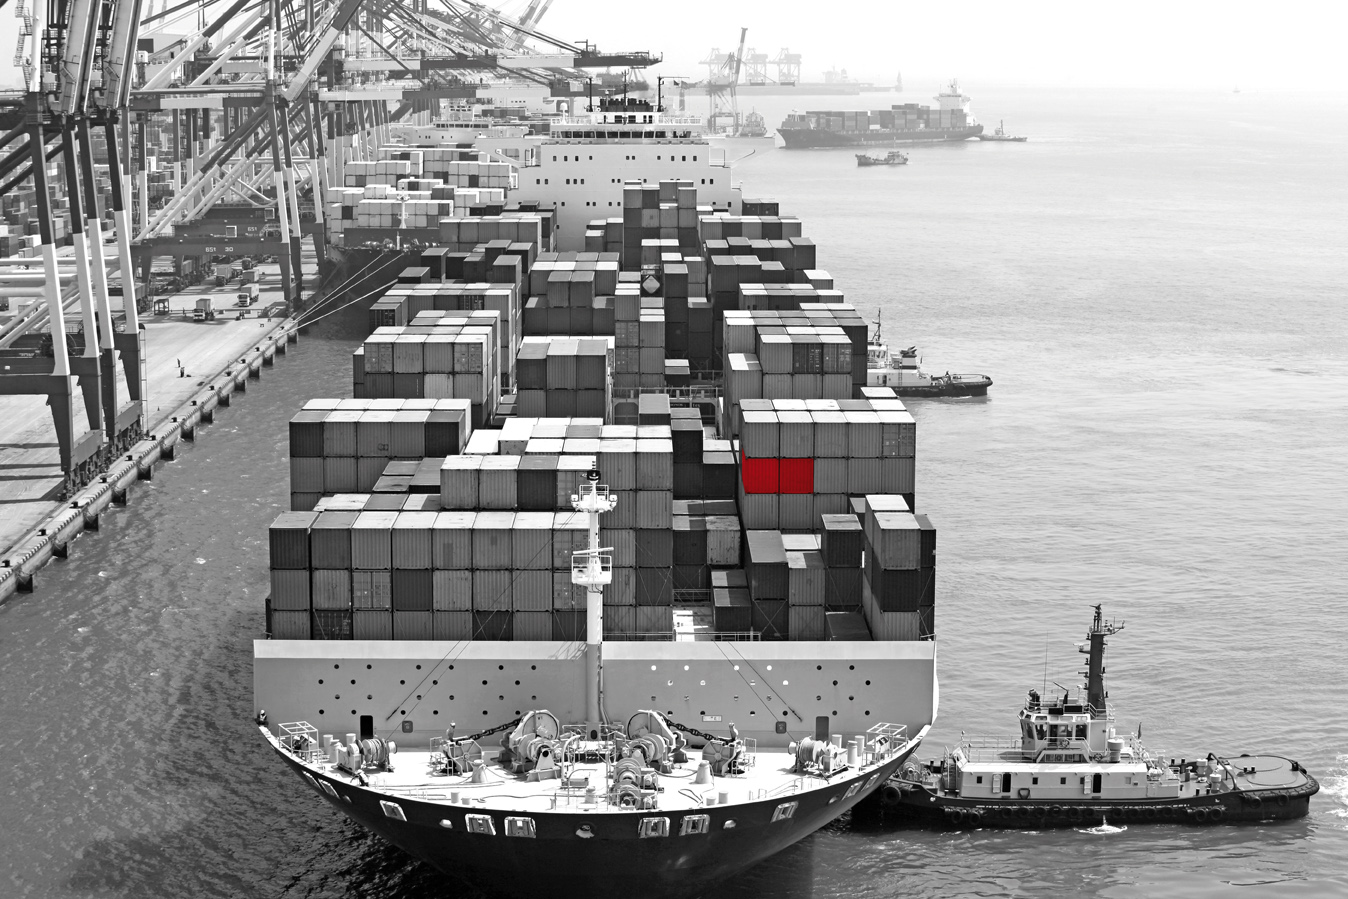 Image of a container ship